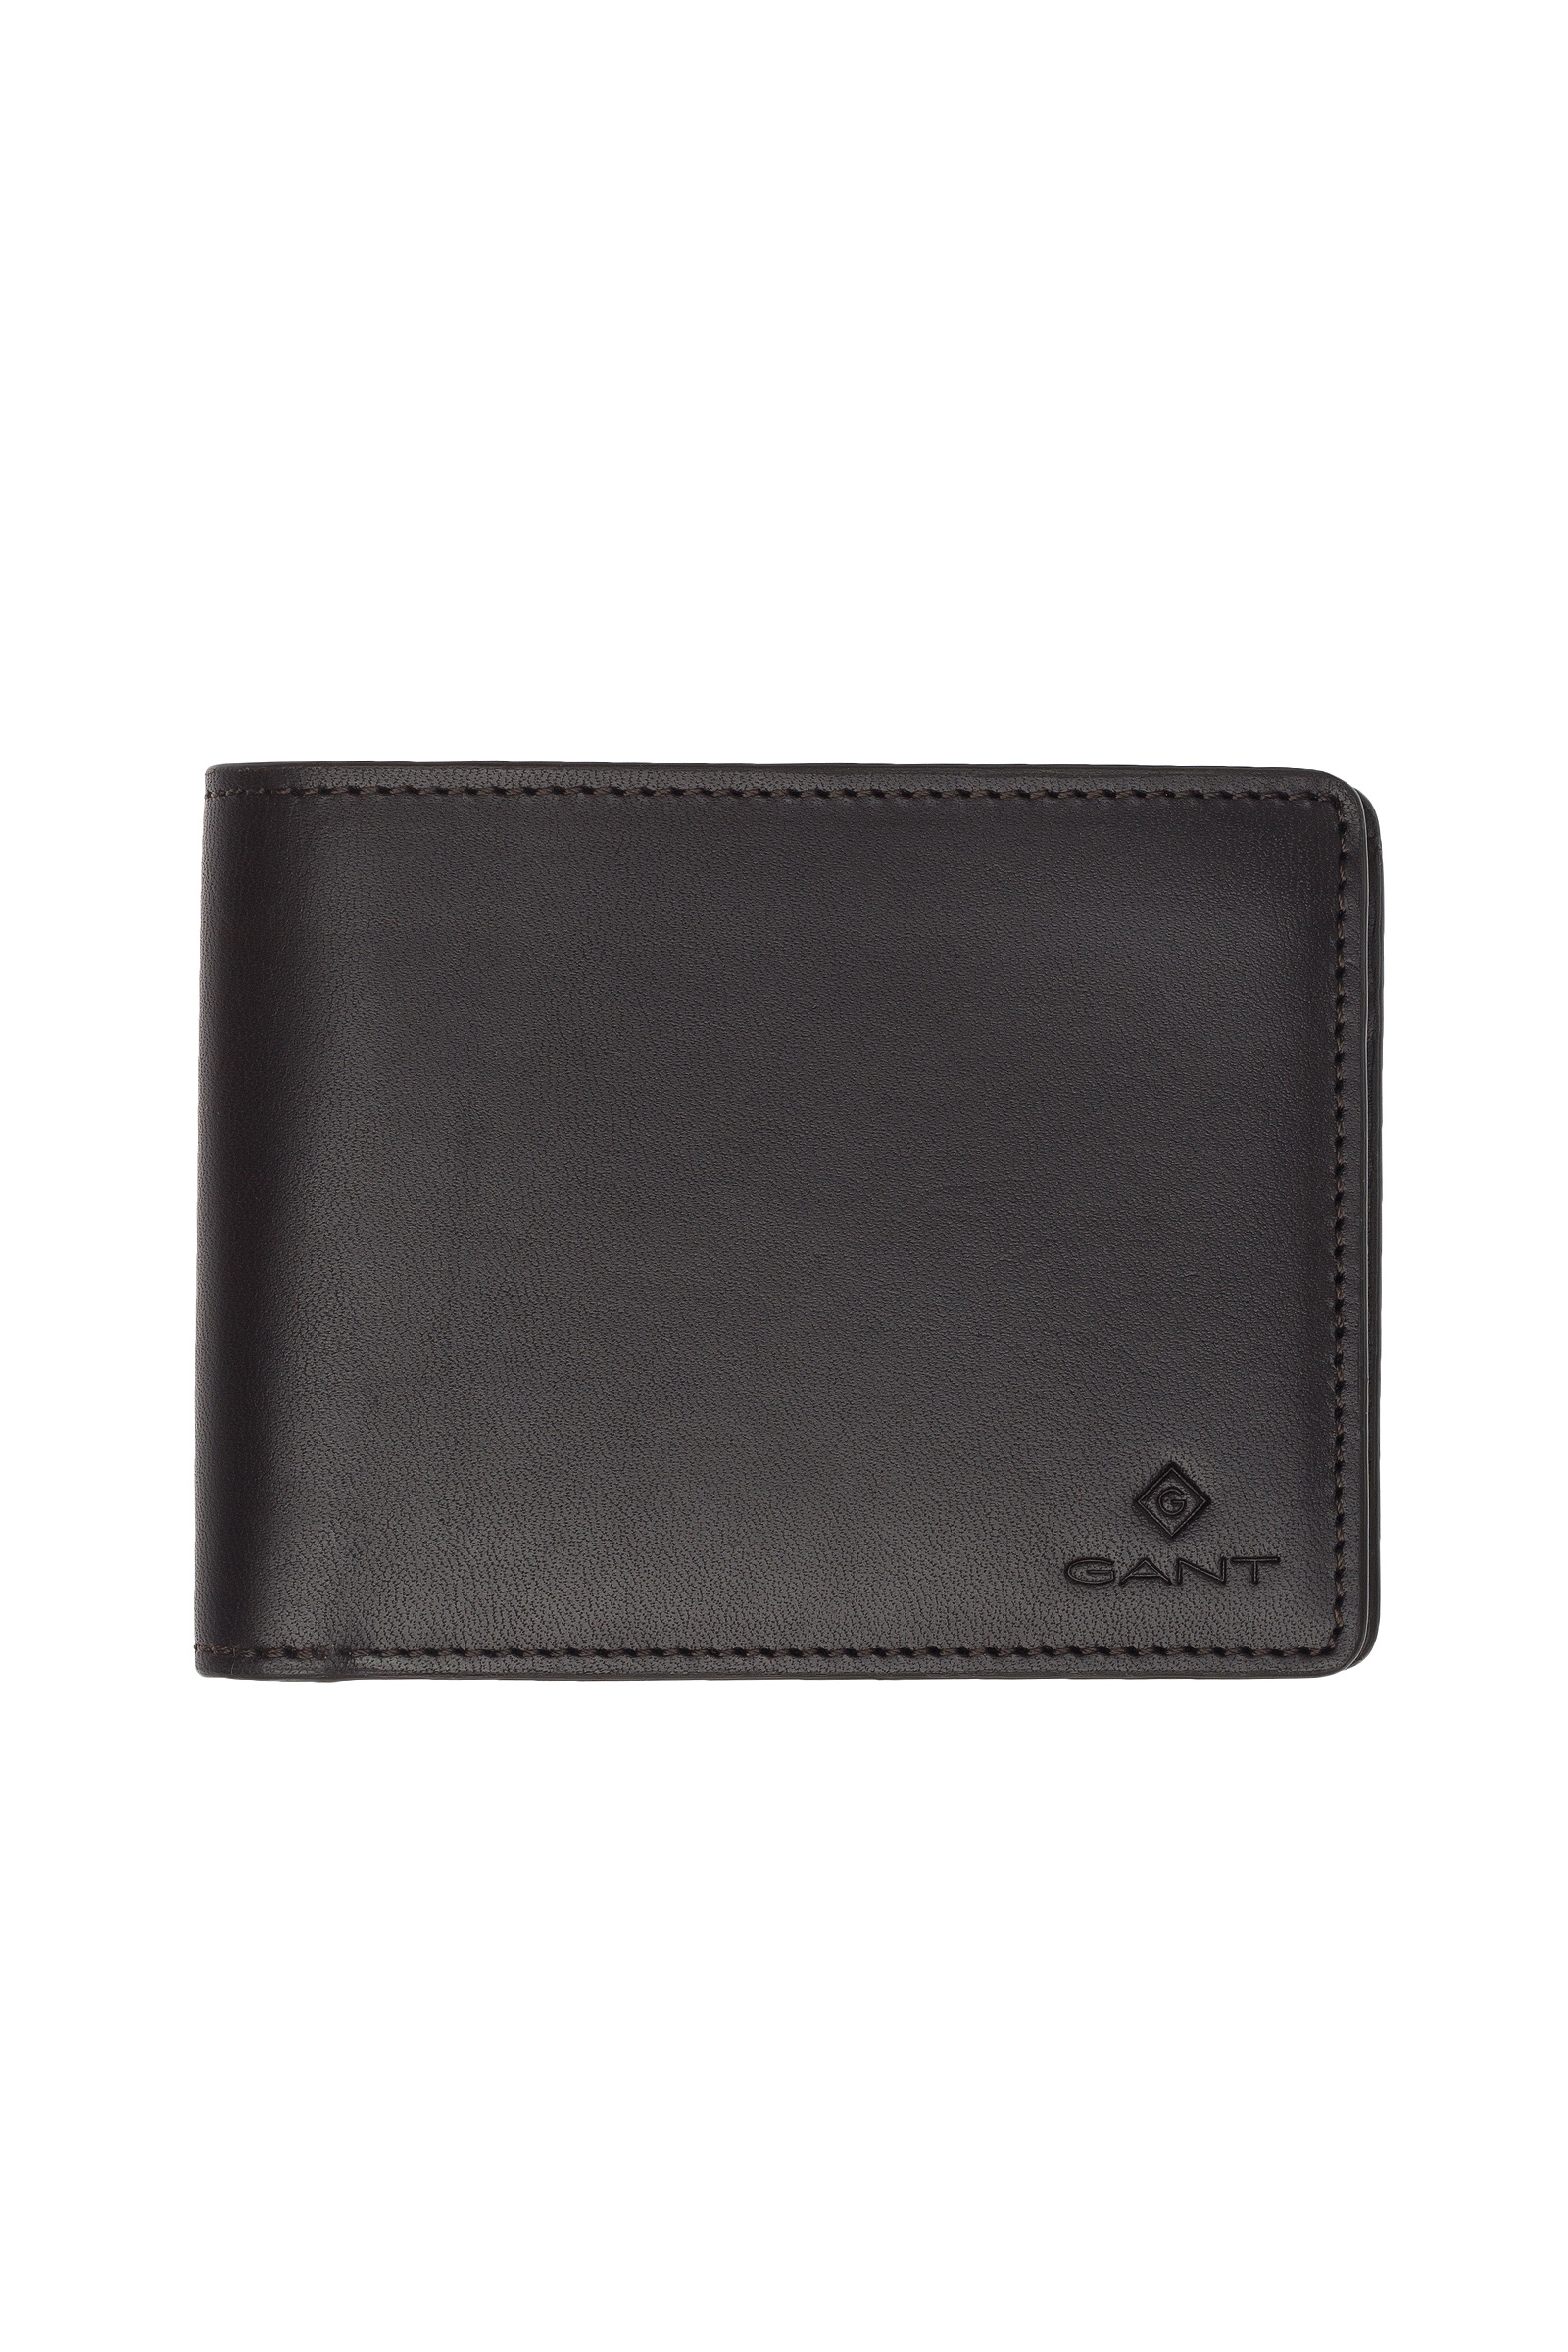 PEŇAŽENKA GANT LEATHER WALLET